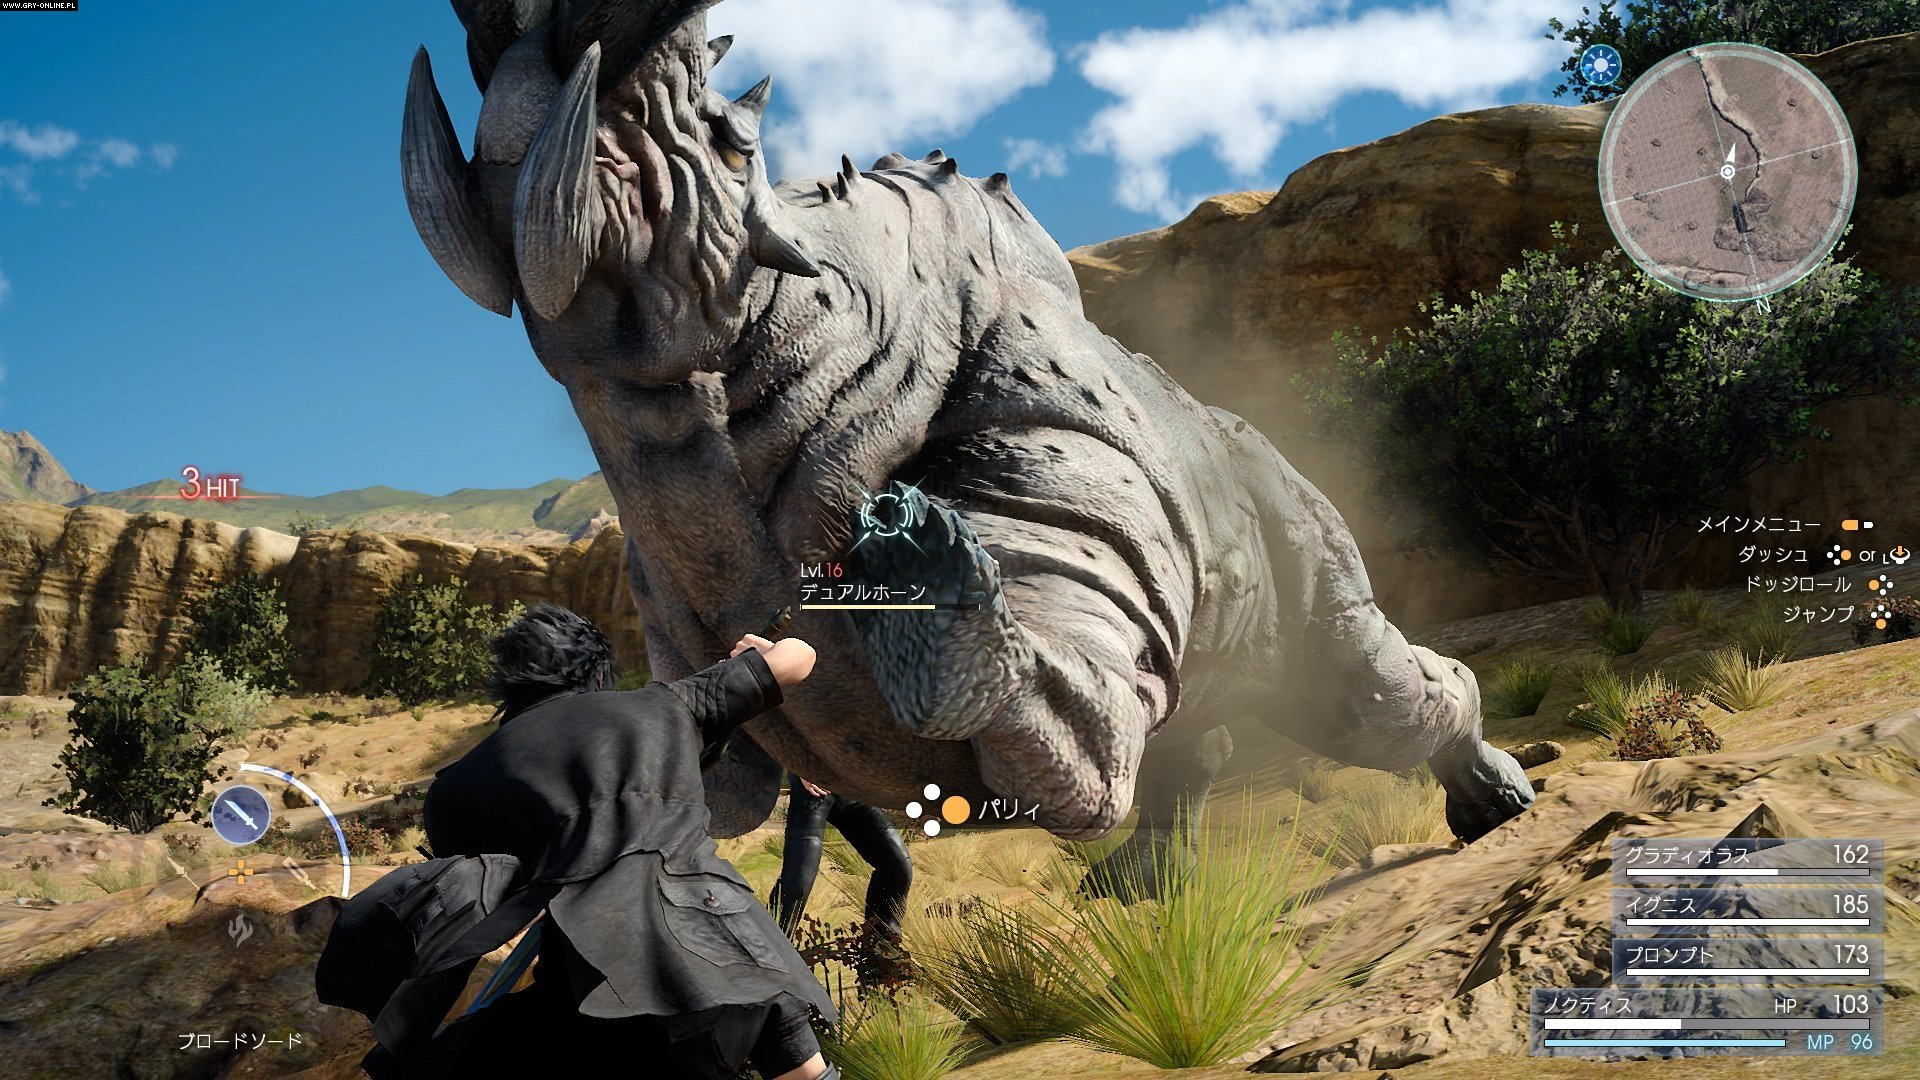 Final Fantasy XV PS4, XONE Gry Screen 220/393, Square-Enix / Eidos